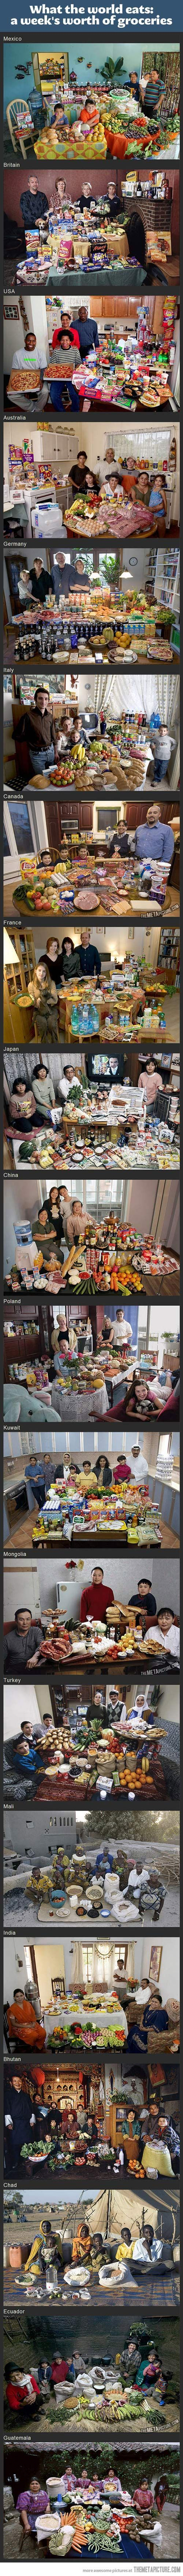 A week's worth of groceries around the world… a very cool and interesting thing to see